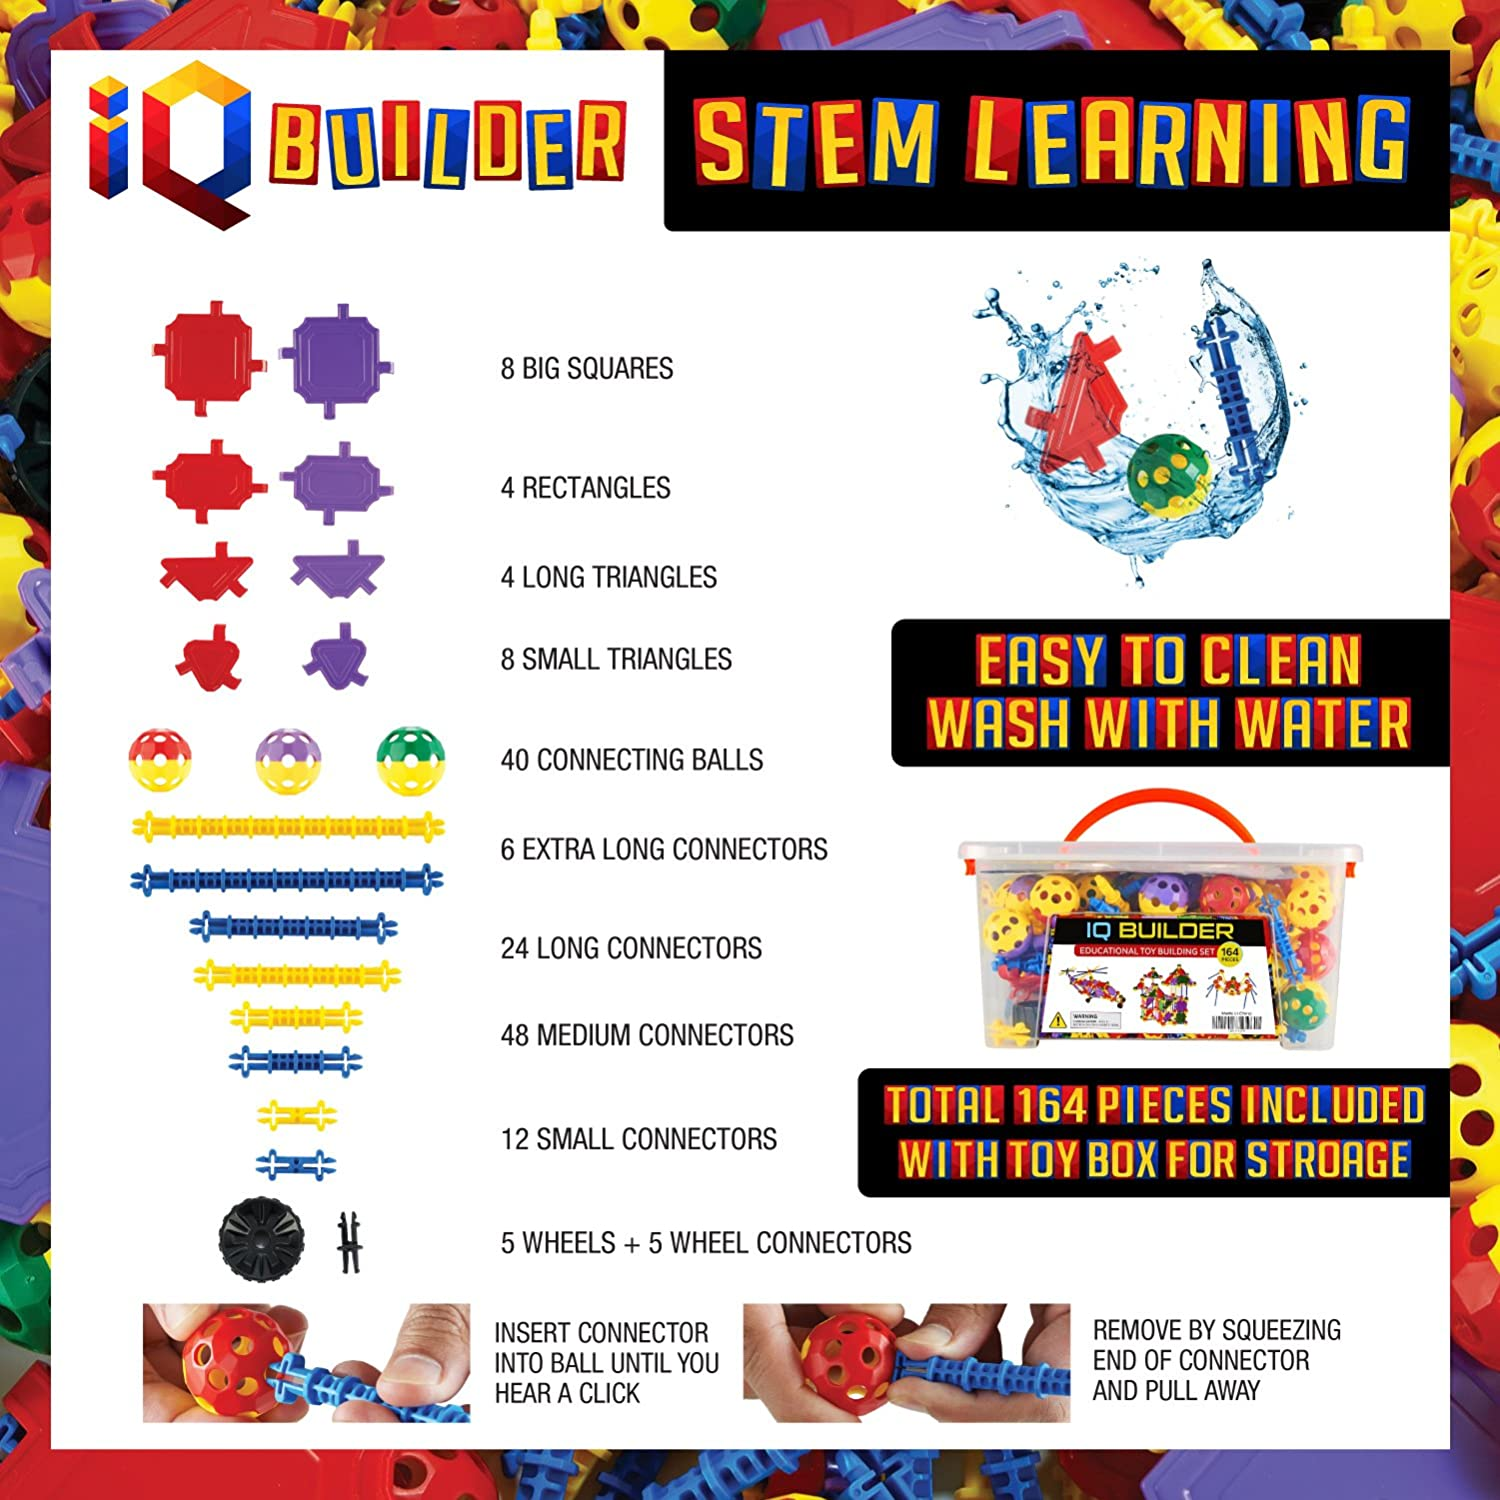 IQ BUILDER Best Toy Gift for Kids Creative Construction Engineering STEM Learning Toys Top Blocks Game Kit Fun Educational Building Toy Set for Boys and Girls Ages 3 4 5 6 7 8 9 10 Year Old